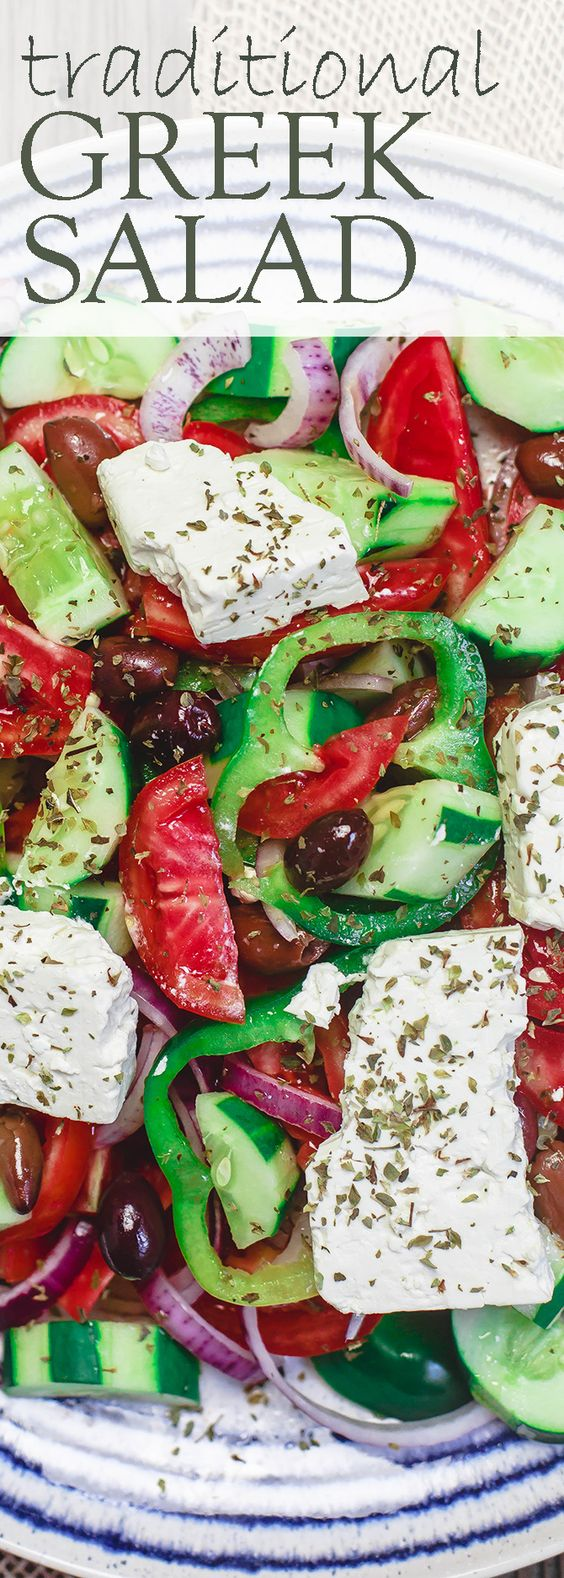 Traditional Greek Salad Recipe   The Mediterranean Dish. Simple, authentic Greek salad with juicy tomatoes, cucumbers, green peppers, creamy feta cheese and olives. Seasoned with oregano and dressed in extra virgin olive oil. A must try from TheMediterraneanDish.com